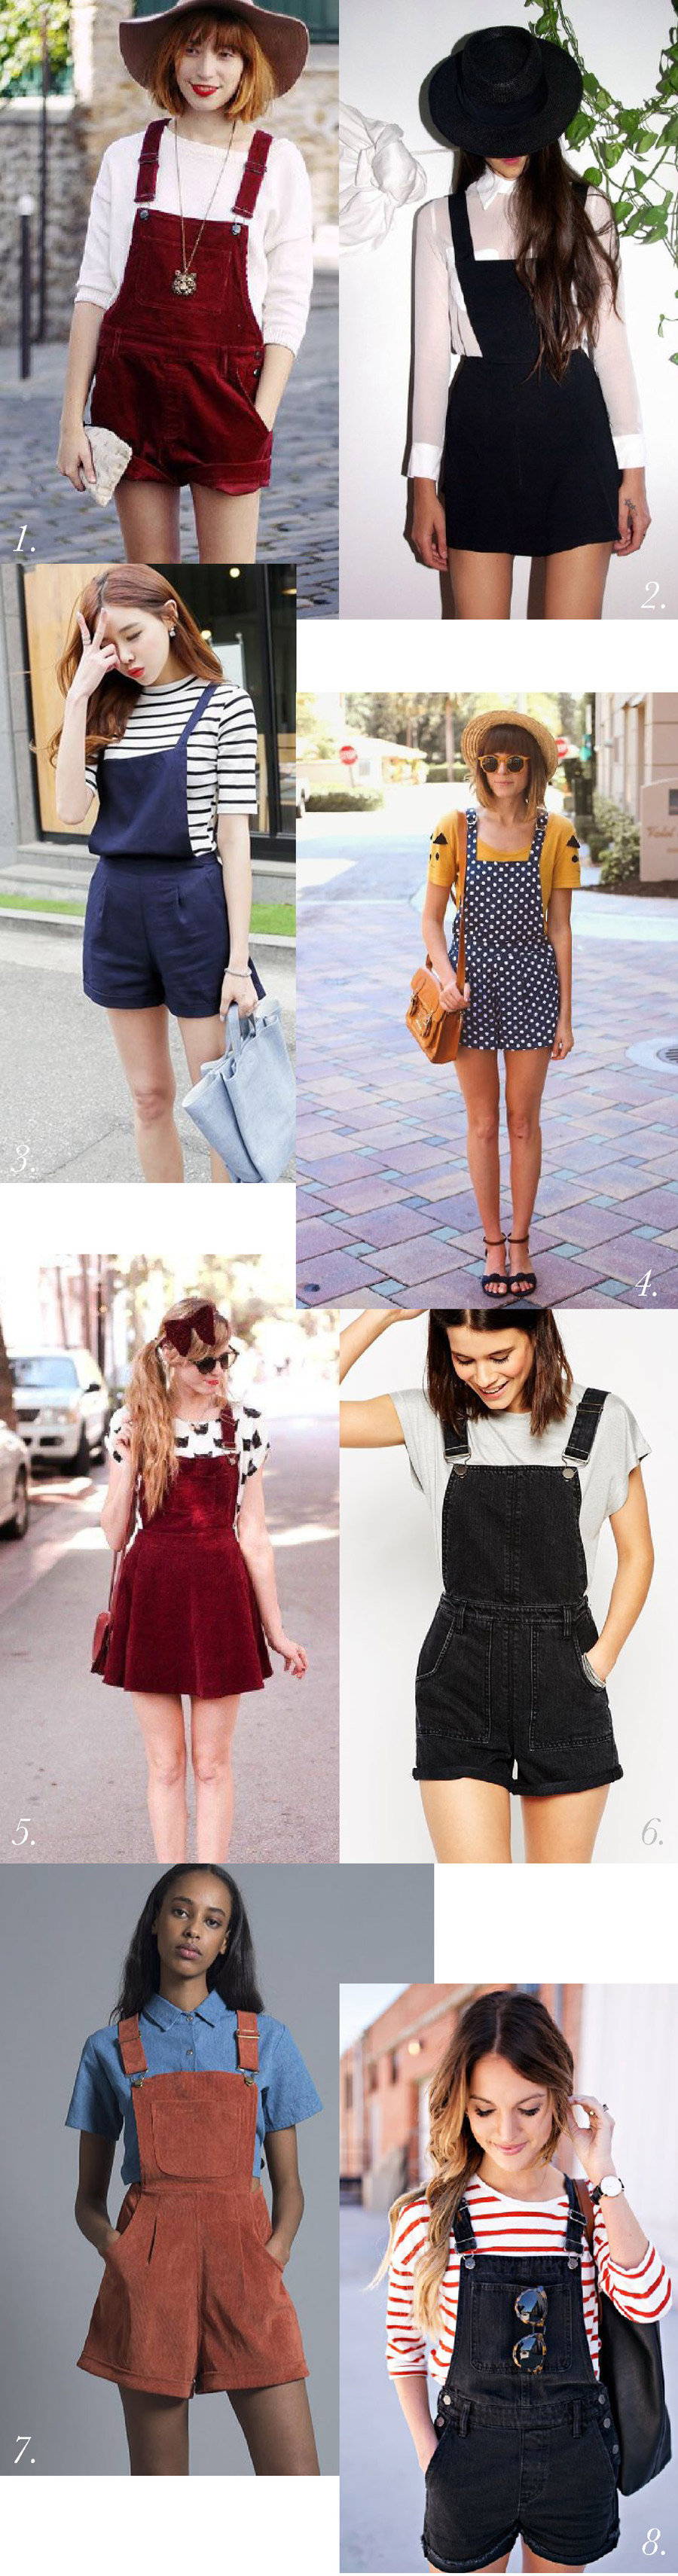 Shorts overalls // Overalls outfit & styling inspiration // Jenny Overalls & Trouser Pattern // Closet Case Patterns